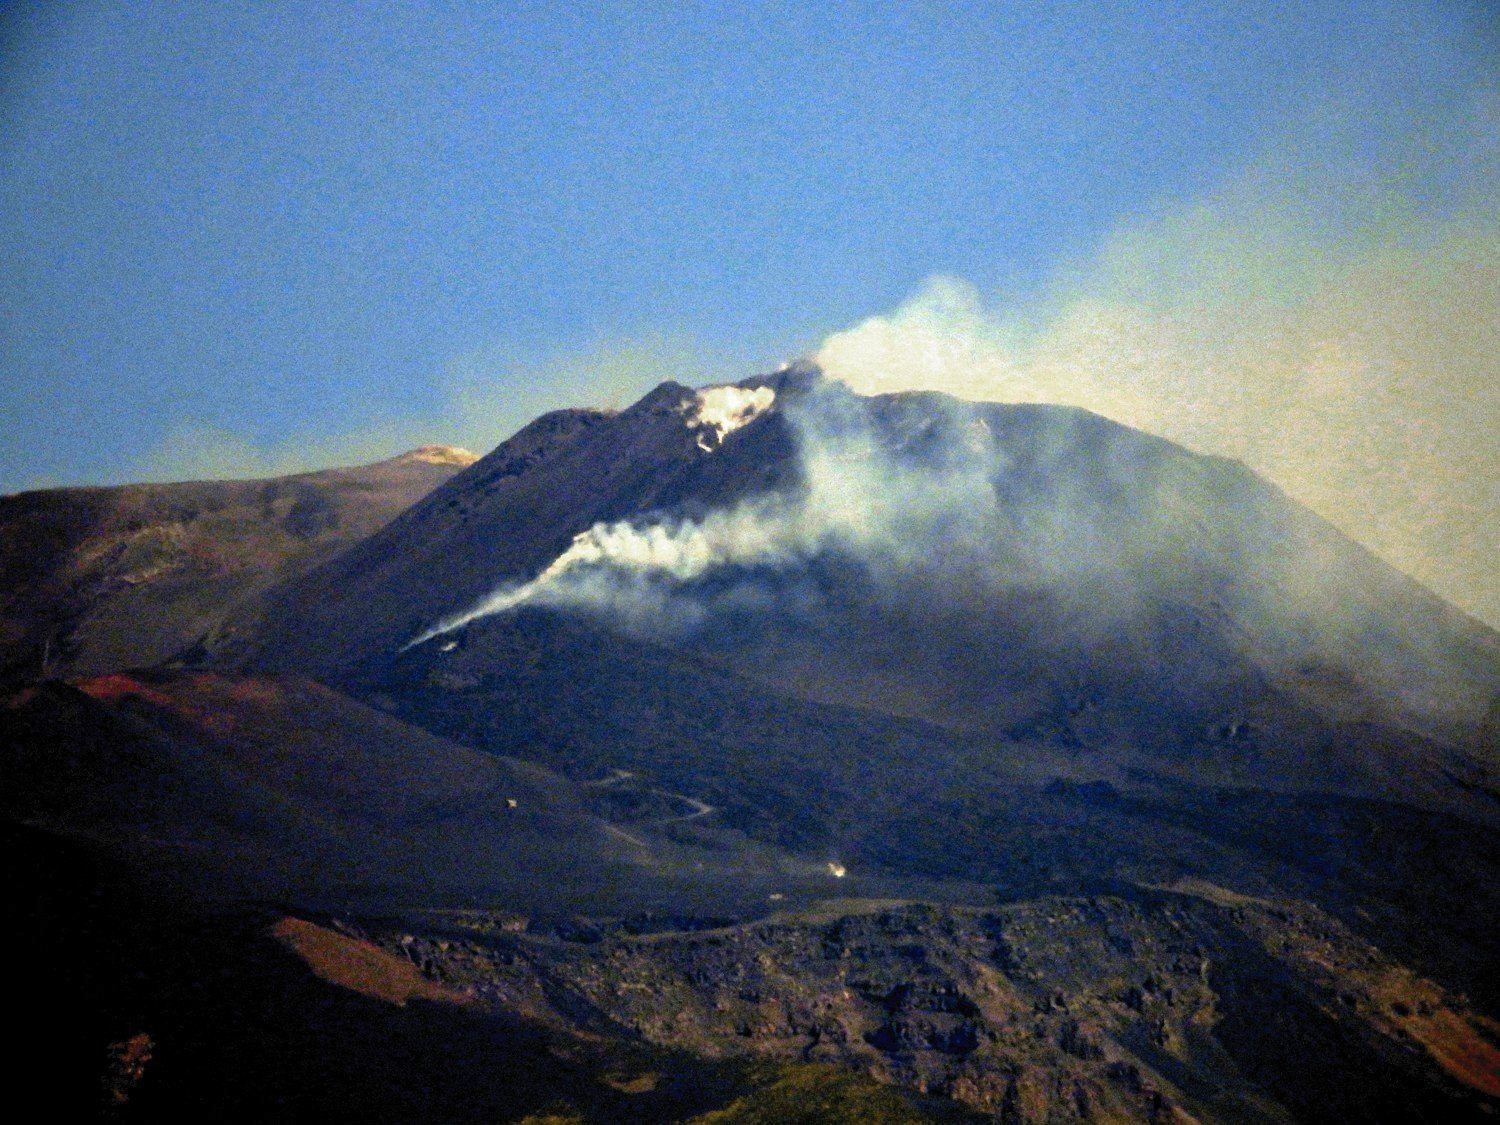 Etna NSEC - 27.07.2019 / 8:24 UTC from Tremestieri Etneo - photo INGVvulcani